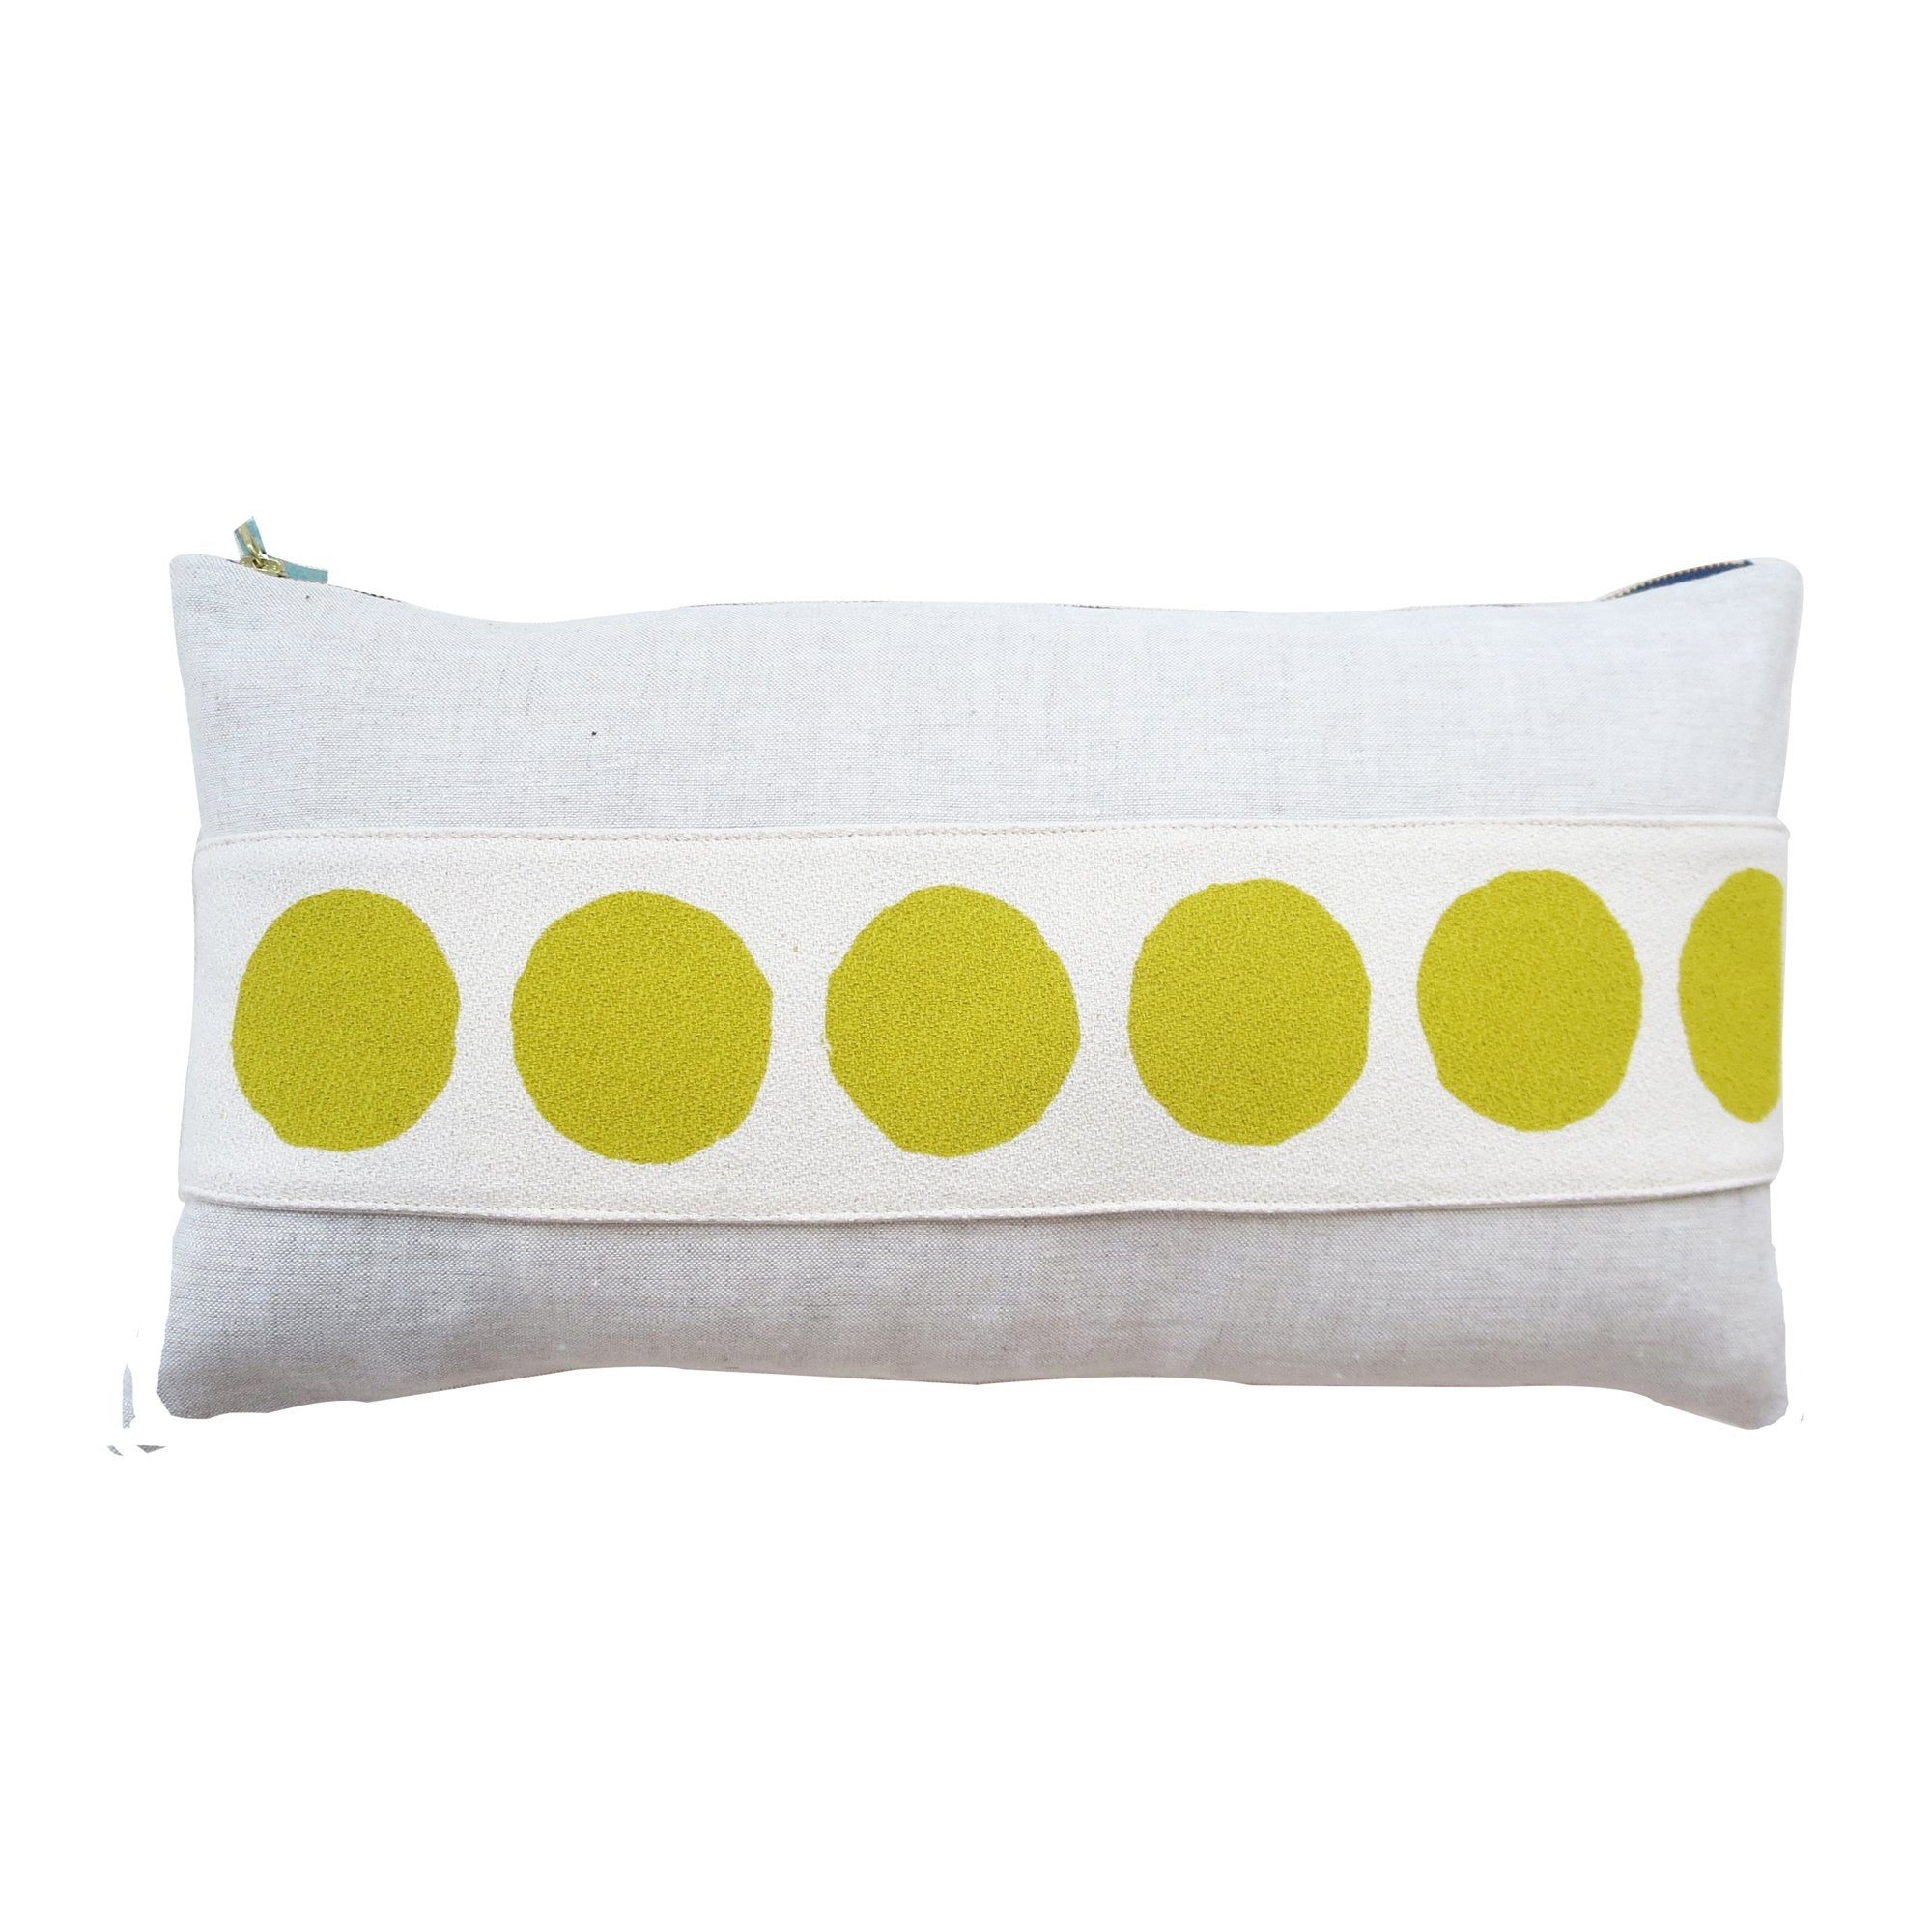 GOLDEN ROD CIRCLE BAND LINEN PILLOW